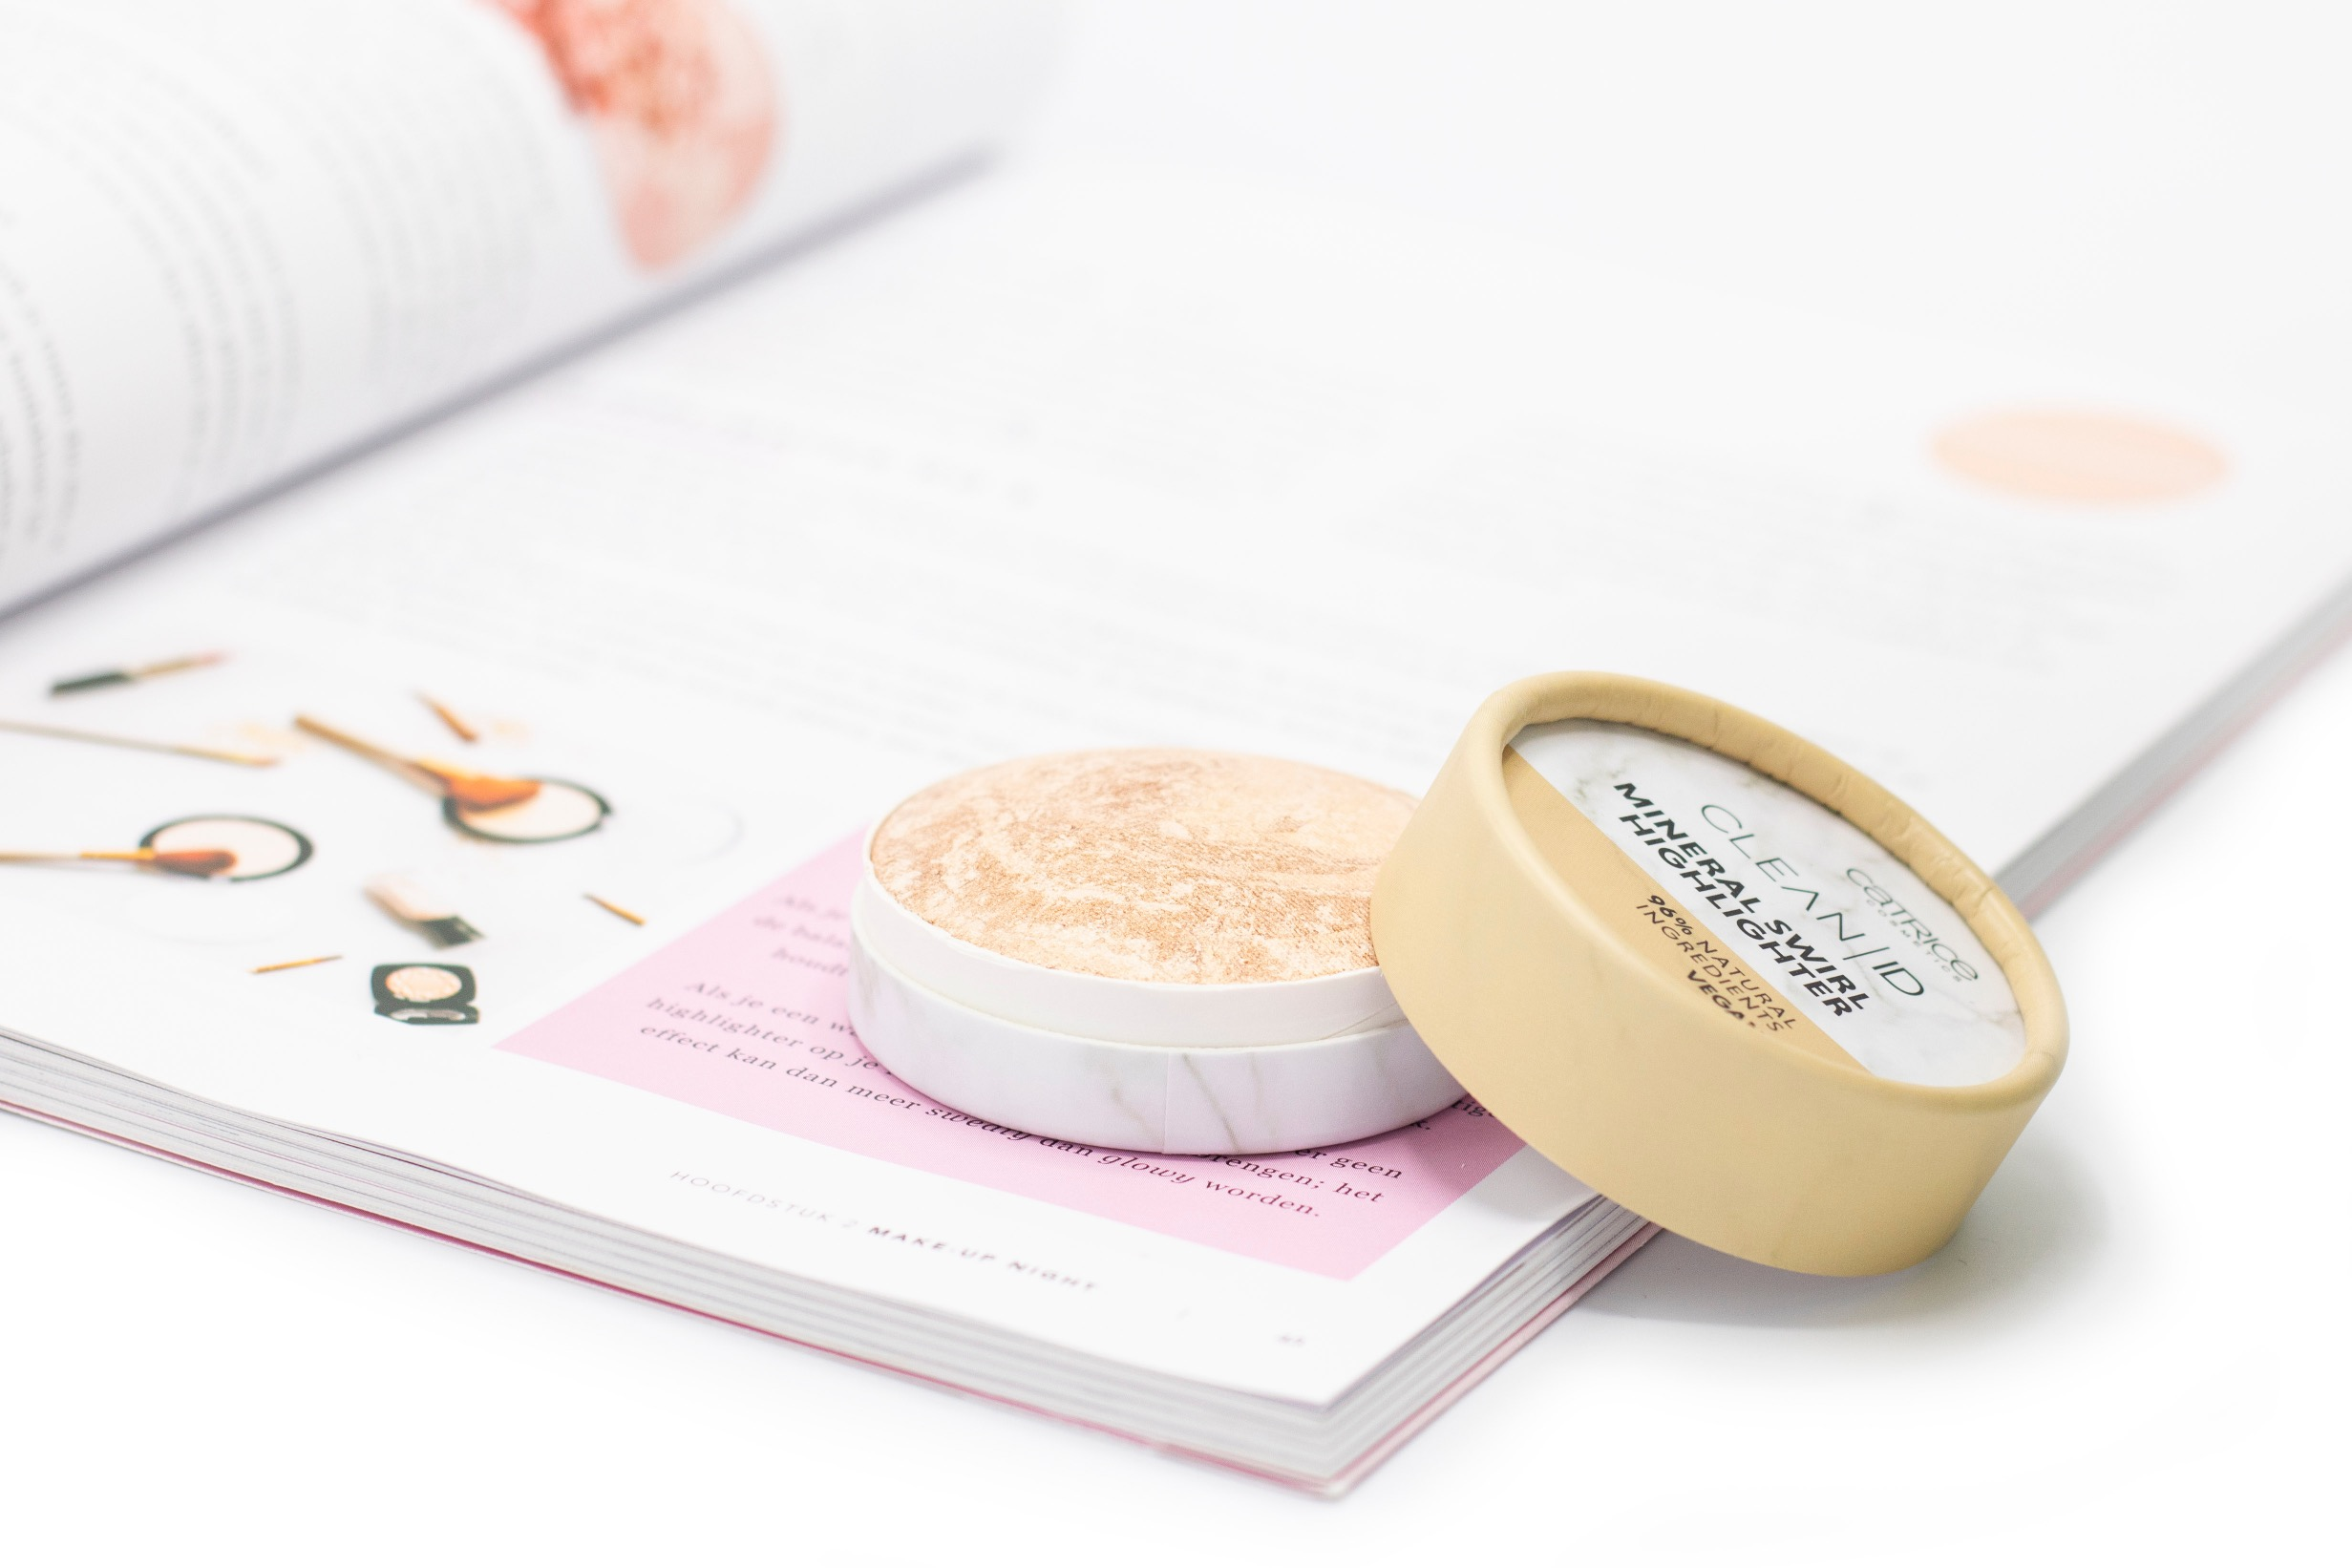 Catrice clean id vegan highlighter review